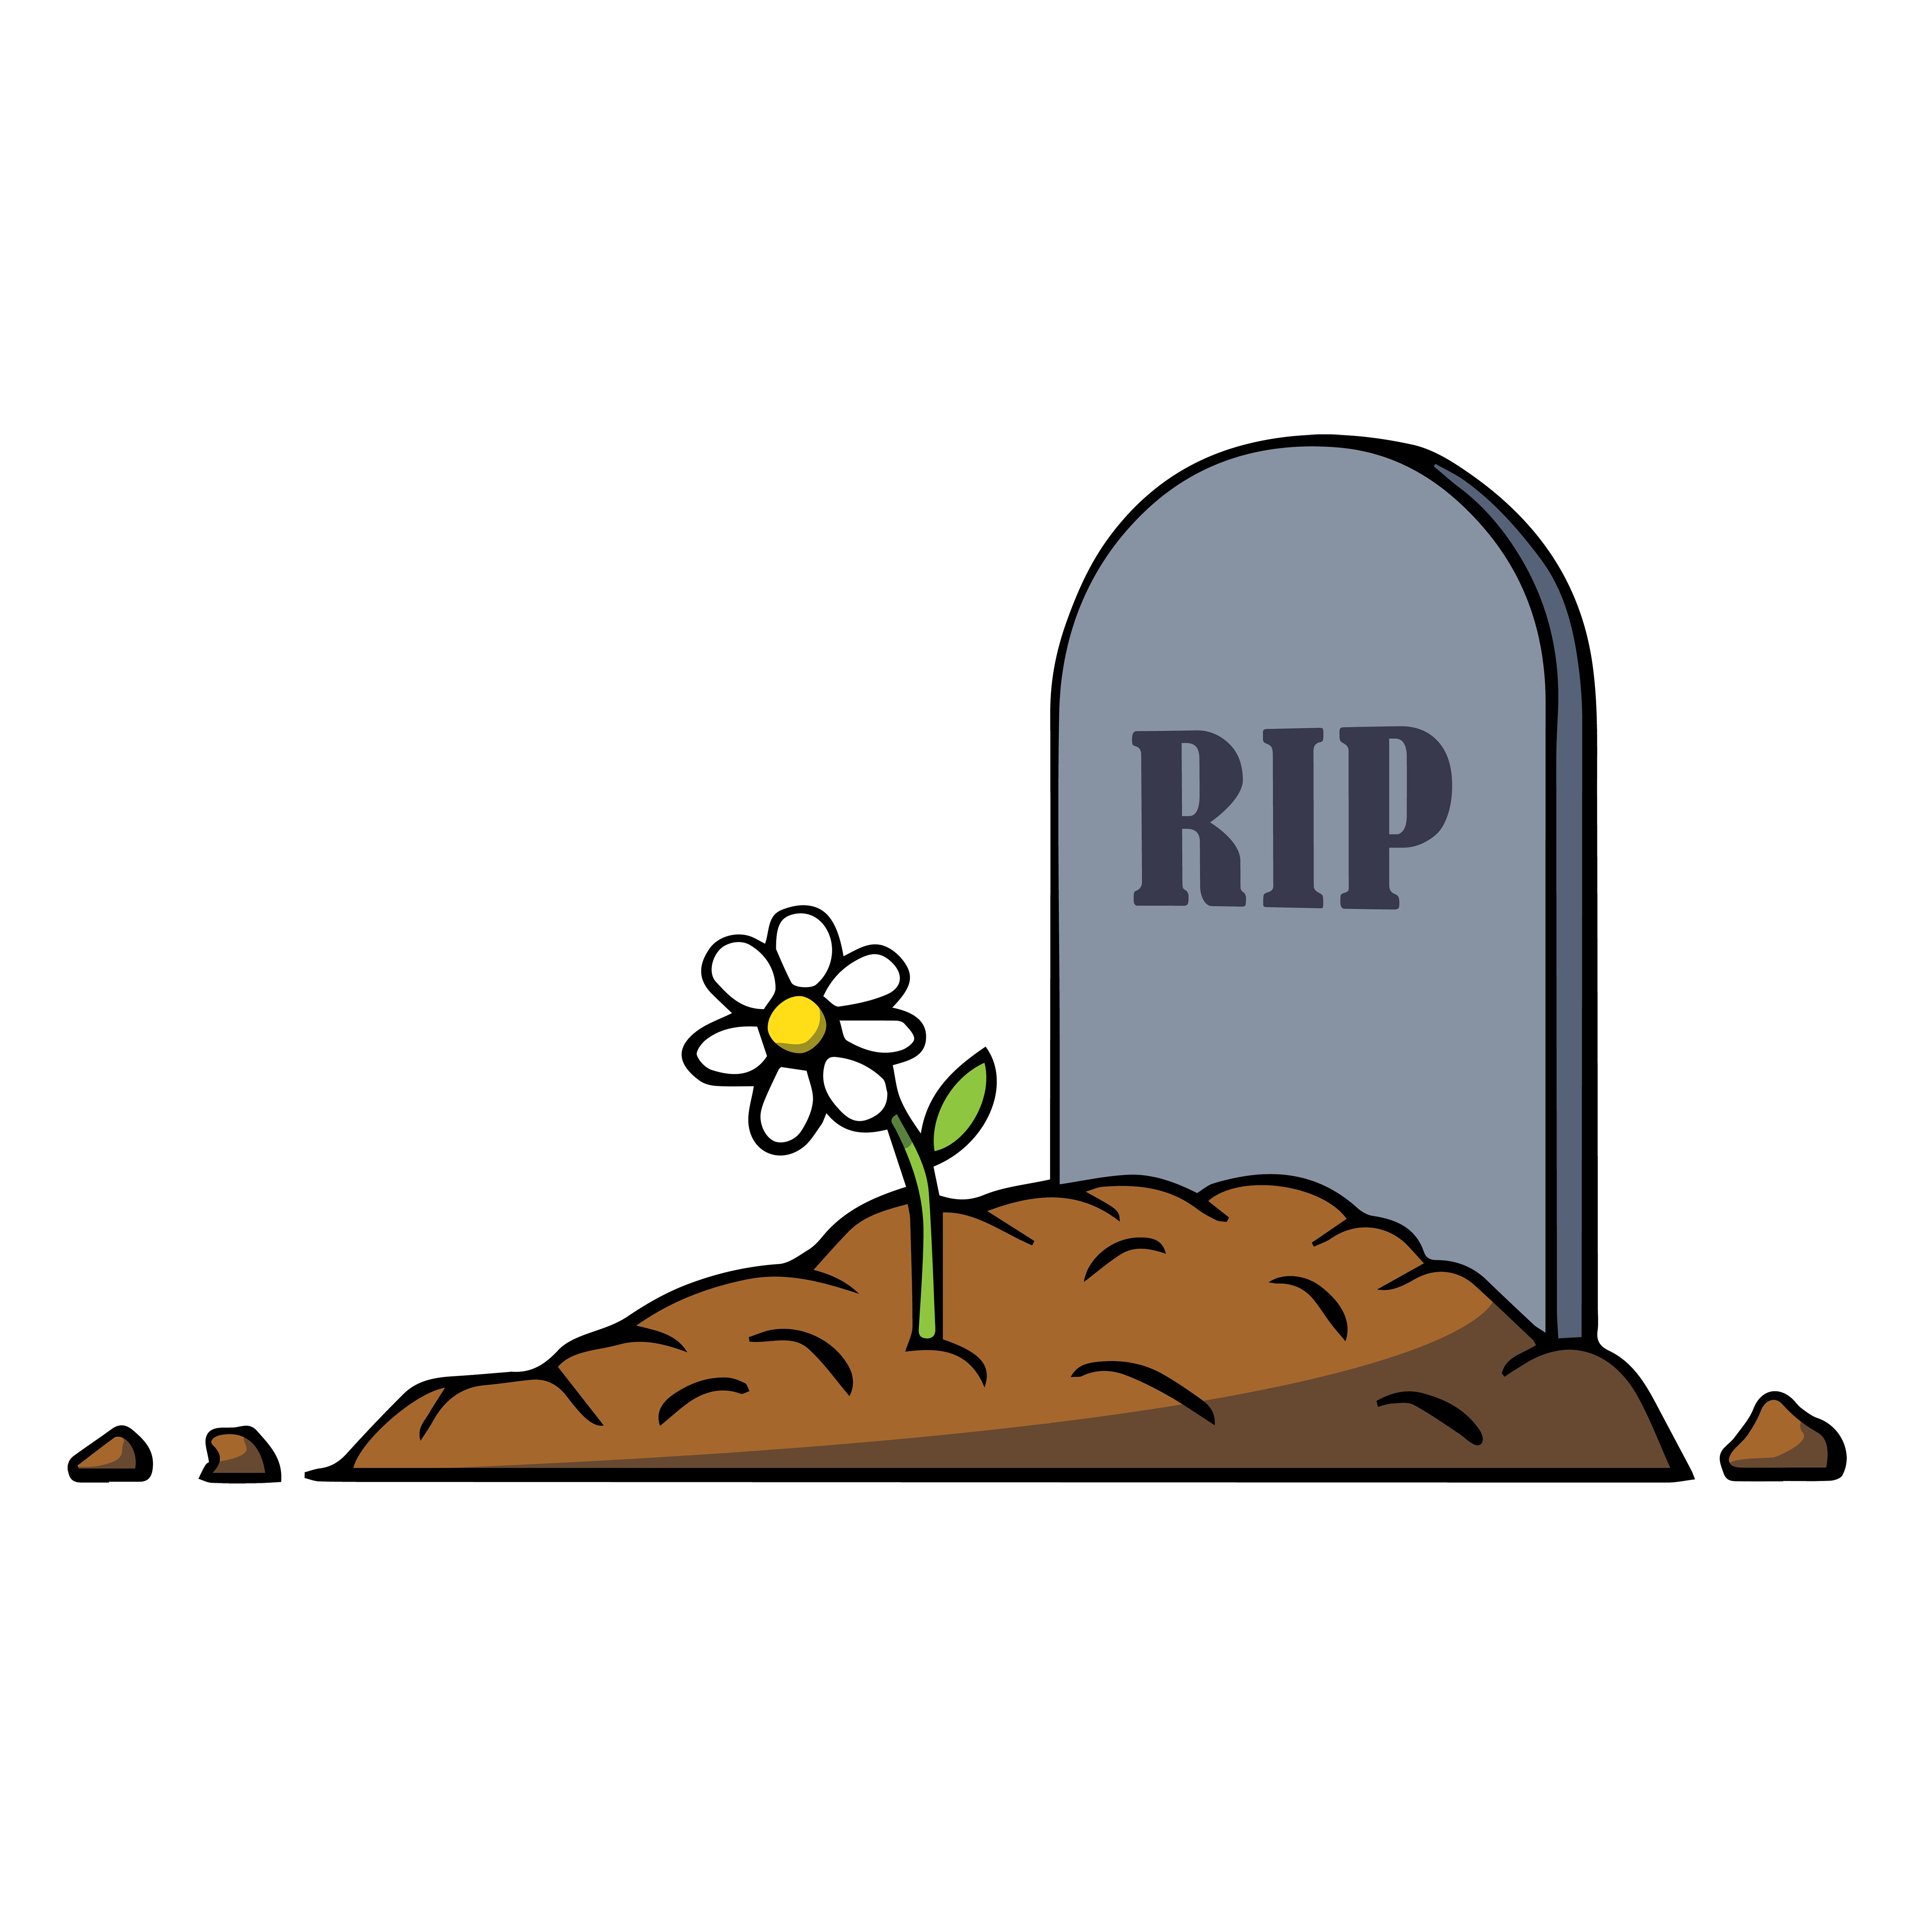 rip cartoon clipart best egyptian coffin clipart coffin image clipart